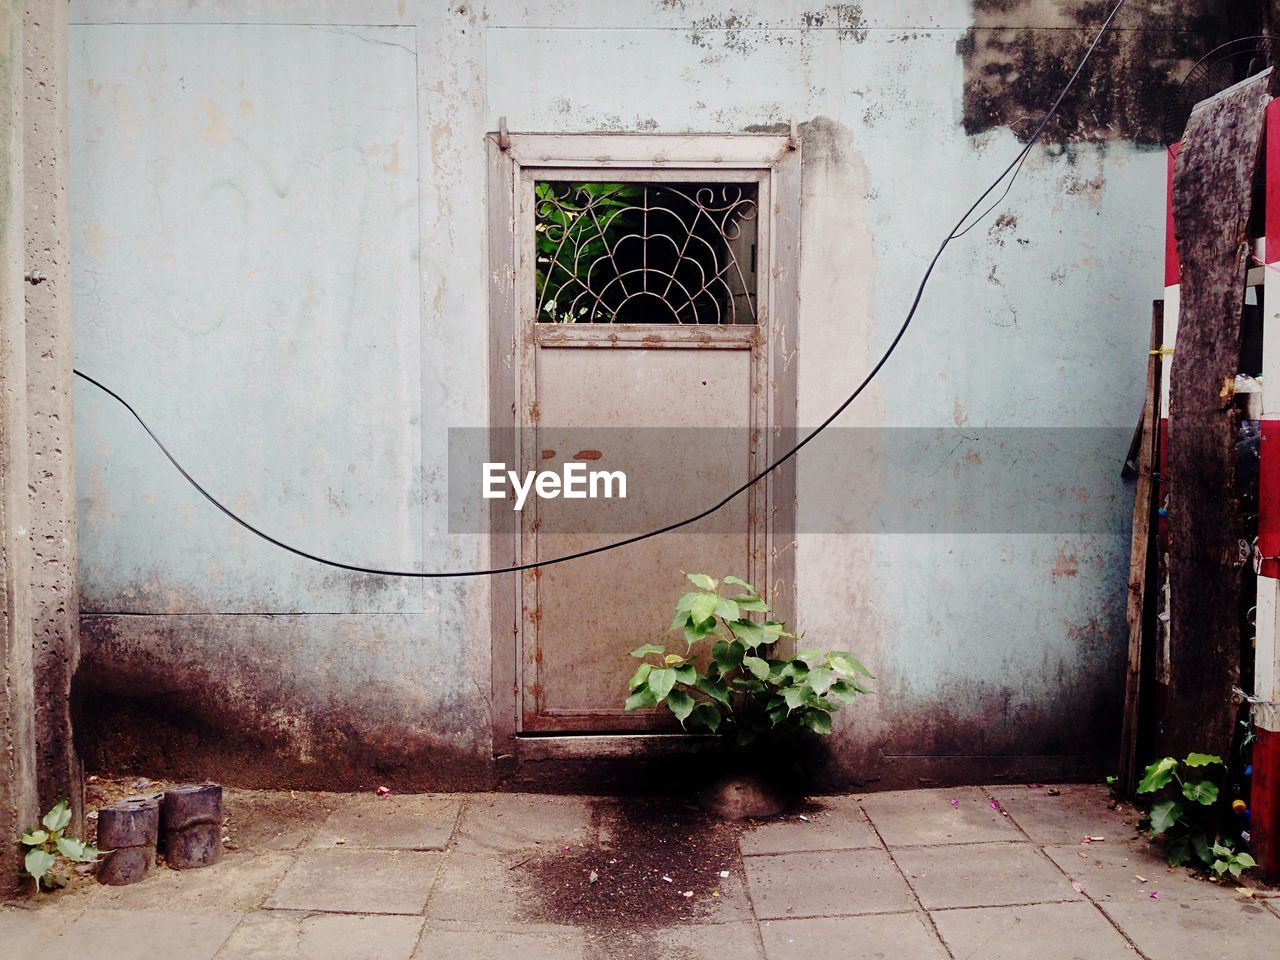 architecture, built structure, building, plant, building exterior, entrance, door, growth, no people, potted plant, nature, window, day, outdoors, wall - building feature, house, flowering plant, flower, ivy, footpath